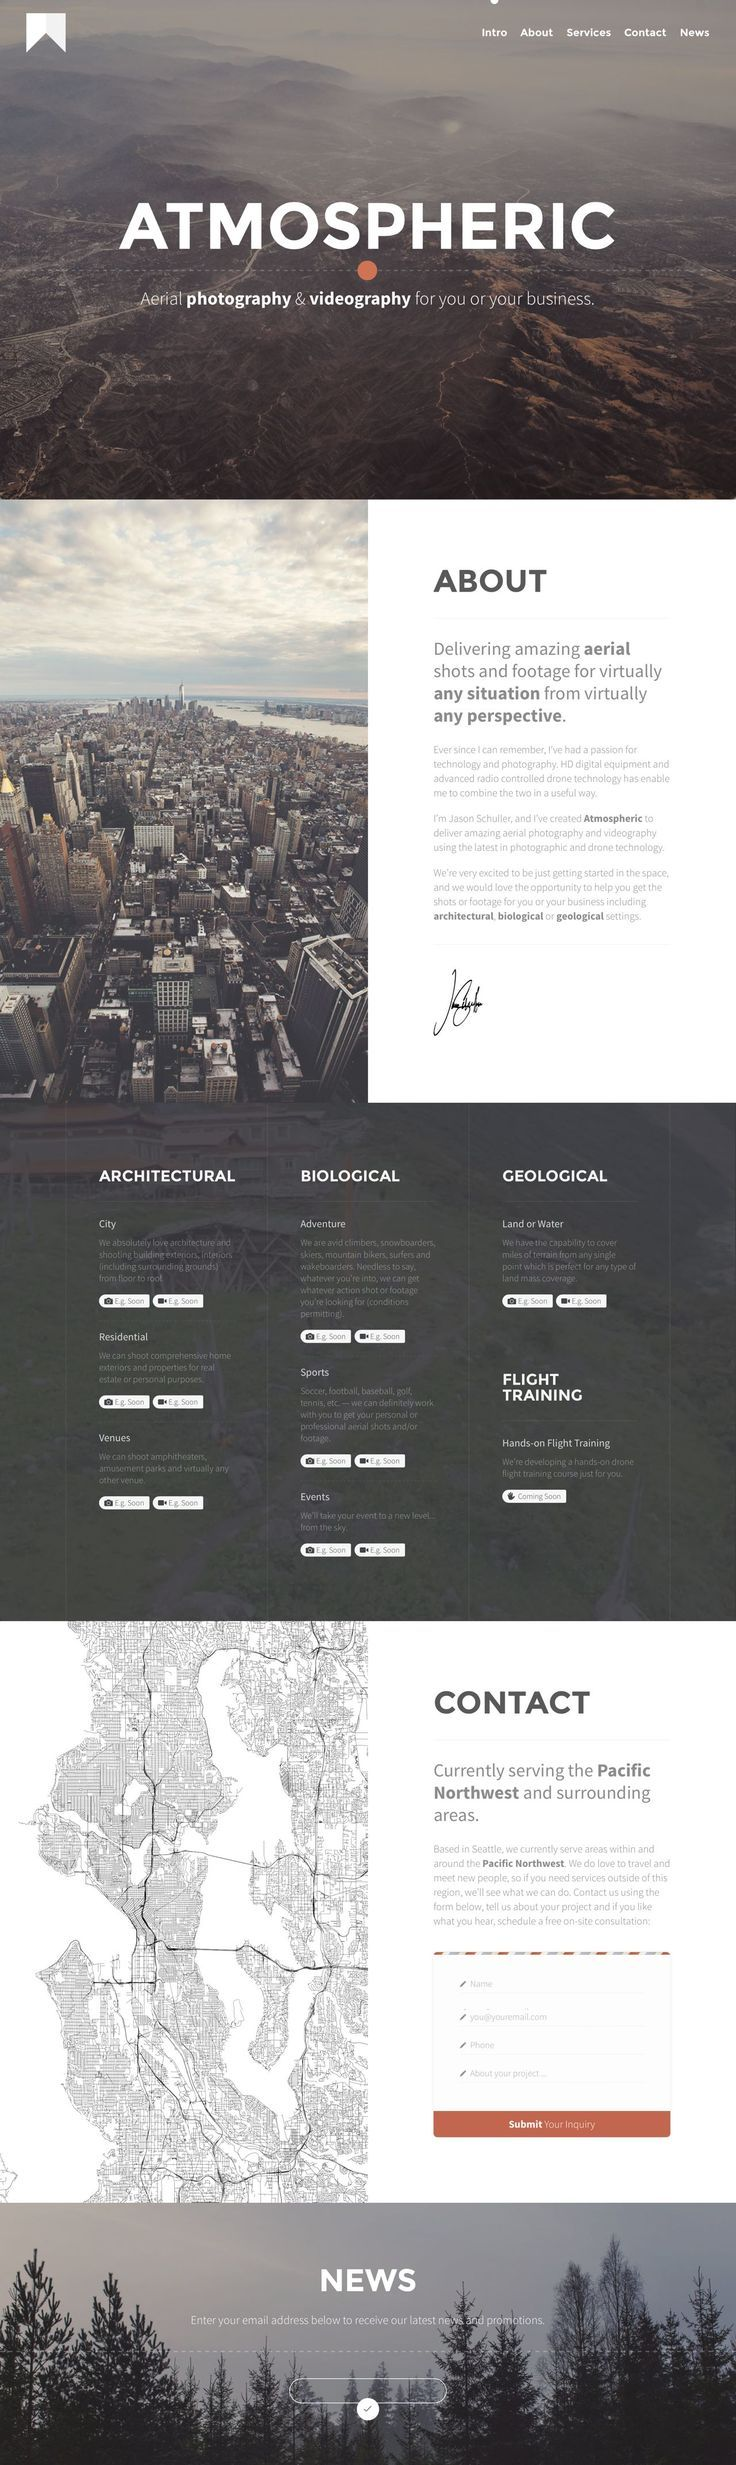 83 best contemporary brand images on Pinterest Graph design